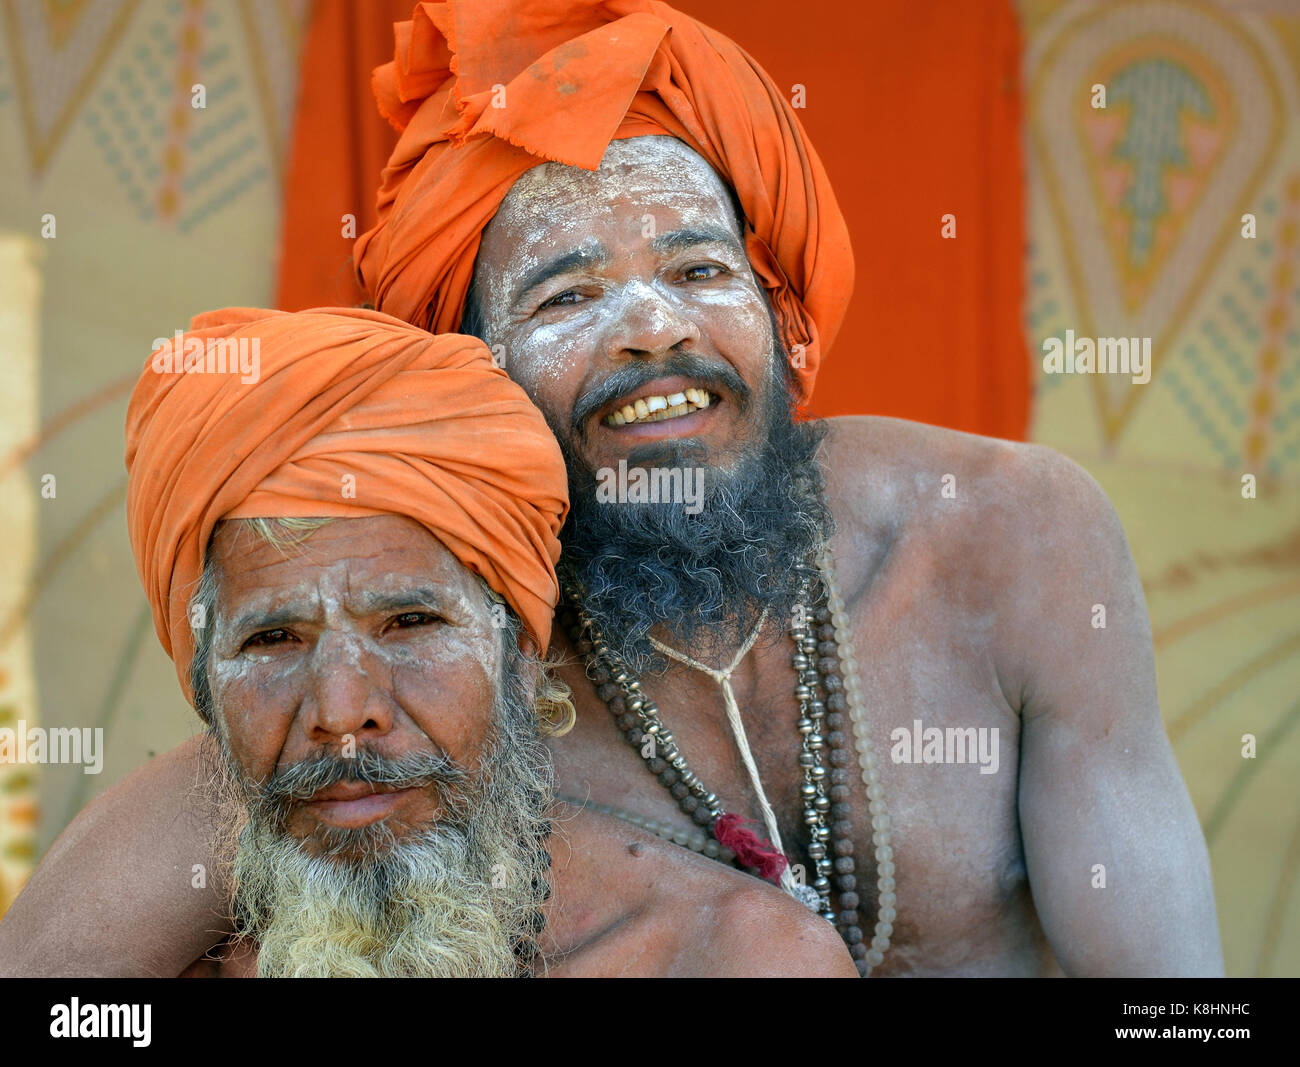 Two happy Indian Hindu sadhus with orange turbans and sacred white ash all over their faces, beards and bodies, - Stock Image